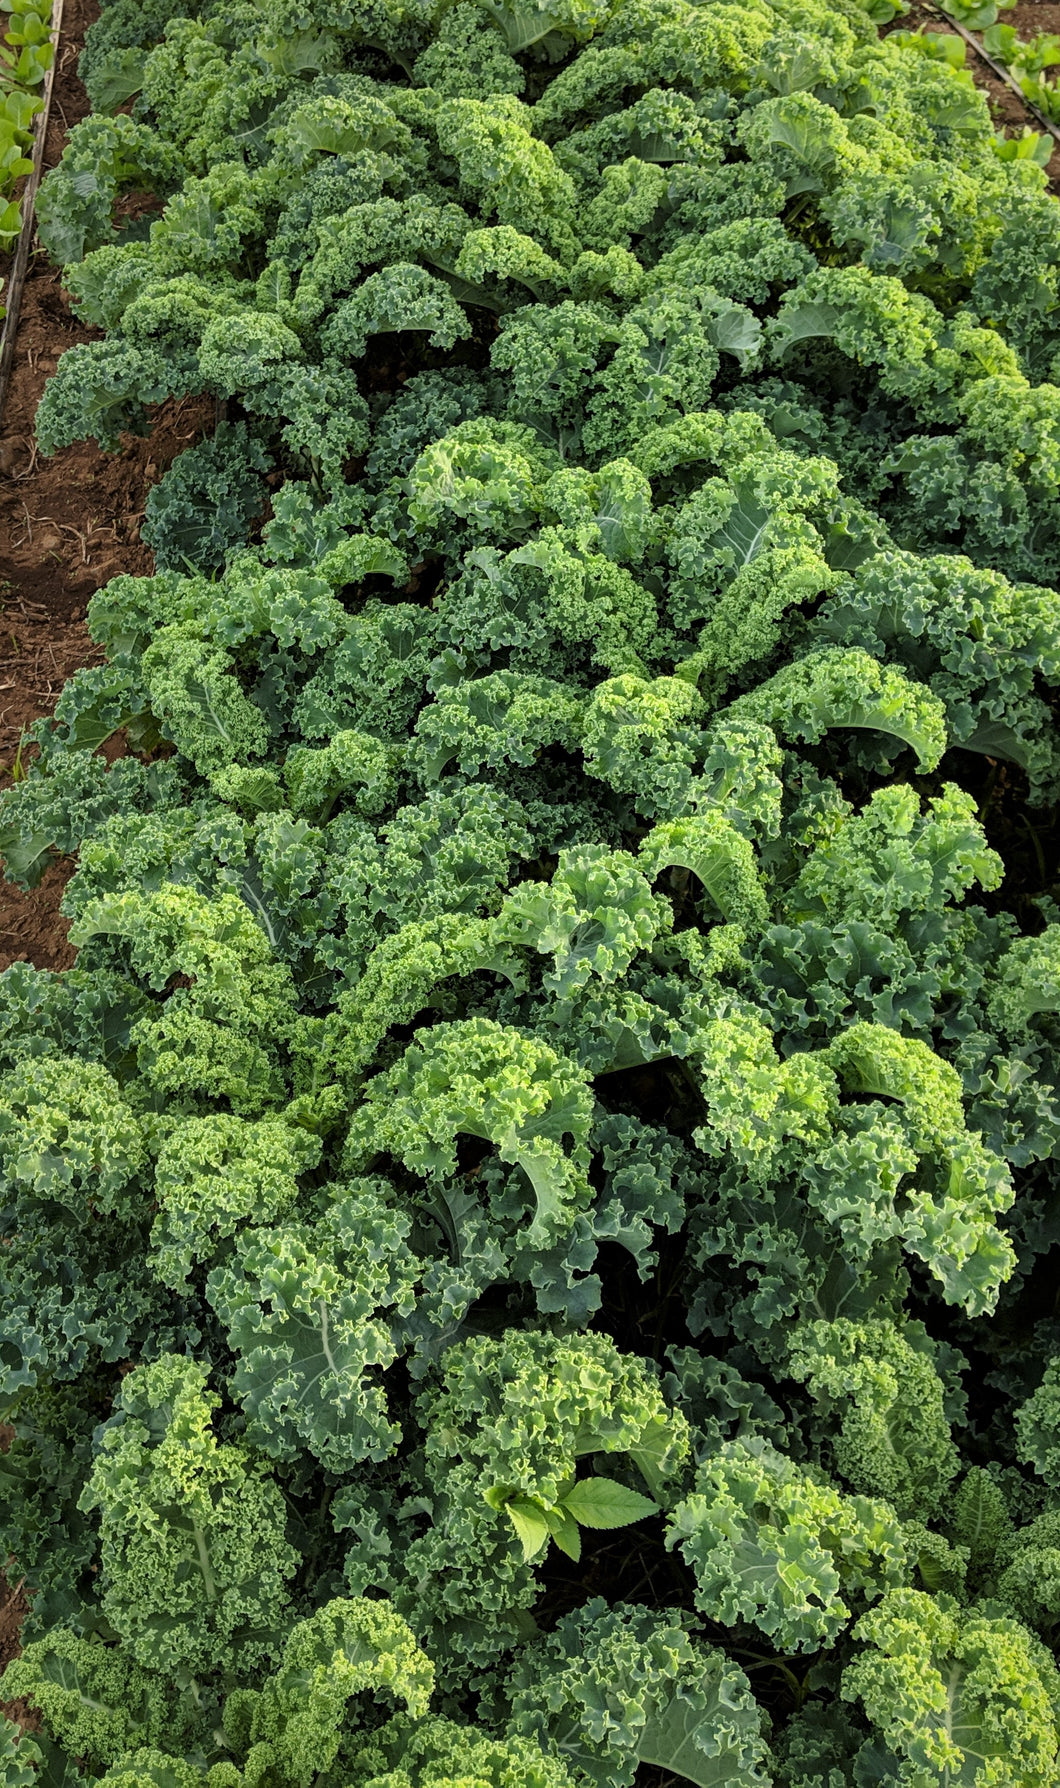 2 Bunches of Curly Kale